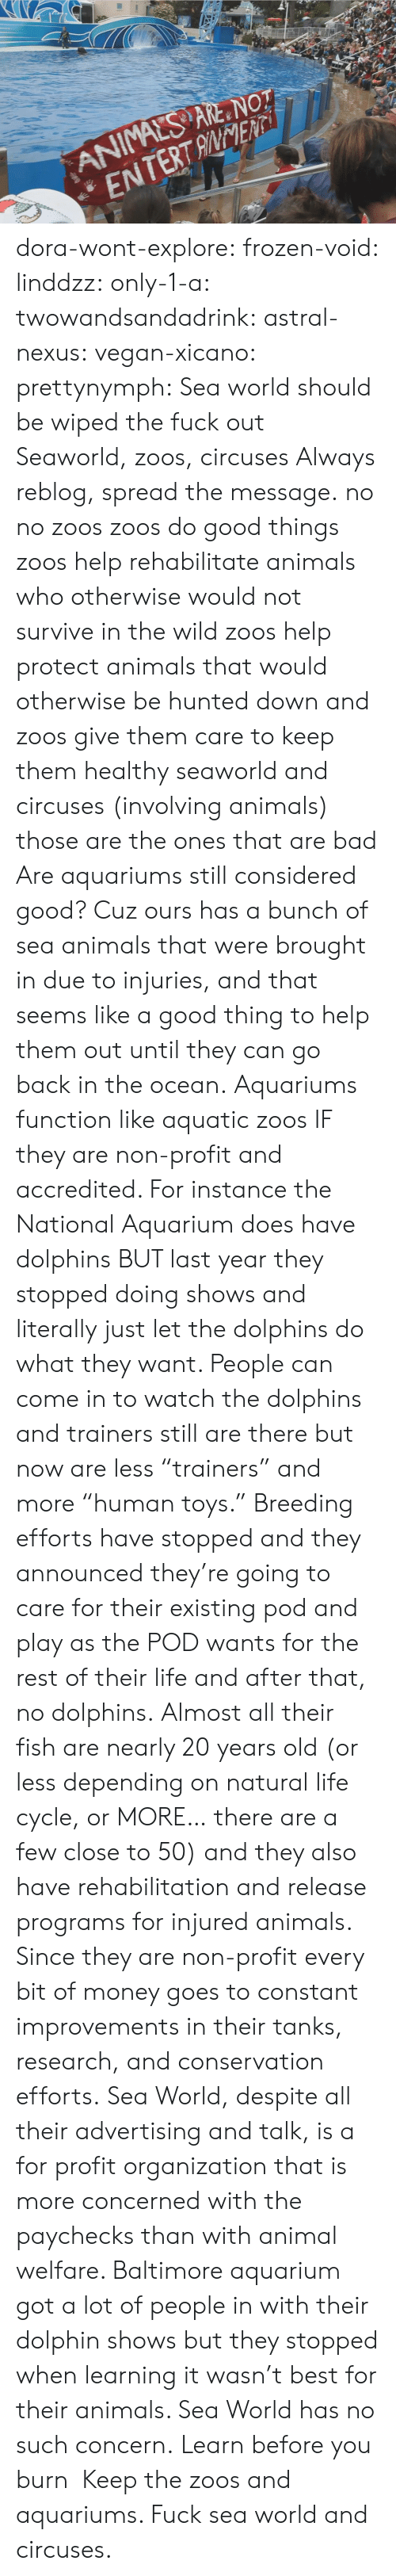 "Baltimore: ANIMALS ARE NOT  ENTERTANENTi dora-wont-explore:   frozen-void:  linddzz:  only-1-a:  twowandsandadrink:  astral-nexus:  vegan-xicano:  prettynymph:  Sea world should be wiped the fuck out  Seaworld, zoos, circuses  Always reblog, spread the message.  no no zoos zoos do good things zoos help rehabilitate animals who otherwise would not survive in the wild zoos help protect animals that would otherwise be hunted down and zoos give them care to keep them healthy seaworld and circuses (involving animals) those are the ones that are bad  Are aquariums still considered good? Cuz ours has a bunch of sea animals that were brought in due to injuries, and that seems like a good thing to help them out until they can go back in the ocean.  Aquariums function like aquatic zoos IF they are non-profit and accredited. For instance the National Aquarium does have dolphins BUT last year they stopped doing shows and literally just let the dolphins do what they want. People can come in to watch the dolphins and trainers still are there but now are less ""trainers"" and more ""human toys."" Breeding efforts have stopped and they announced they're going to care for their existing pod and play as the POD wants for the rest of their life and after that, no dolphins. Almost all their fish are nearly 20 years old (or less depending on natural life cycle, or MORE… there are a few close to 50) and they also have rehabilitation and release programs for injured animals. Since they are non-profit every bit of money goes to constant improvements in their tanks, research, and conservation efforts. Sea World, despite all their advertising and talk, is a for profit organization that is more concerned with the paychecks than with animal welfare. Baltimore aquarium got a lot of people in with their dolphin shows but they stopped when learning it wasn't best for their animals. Sea World has no such concern.  Learn before you burn   Keep the zoos and aquariums. Fuck sea world and circuses."